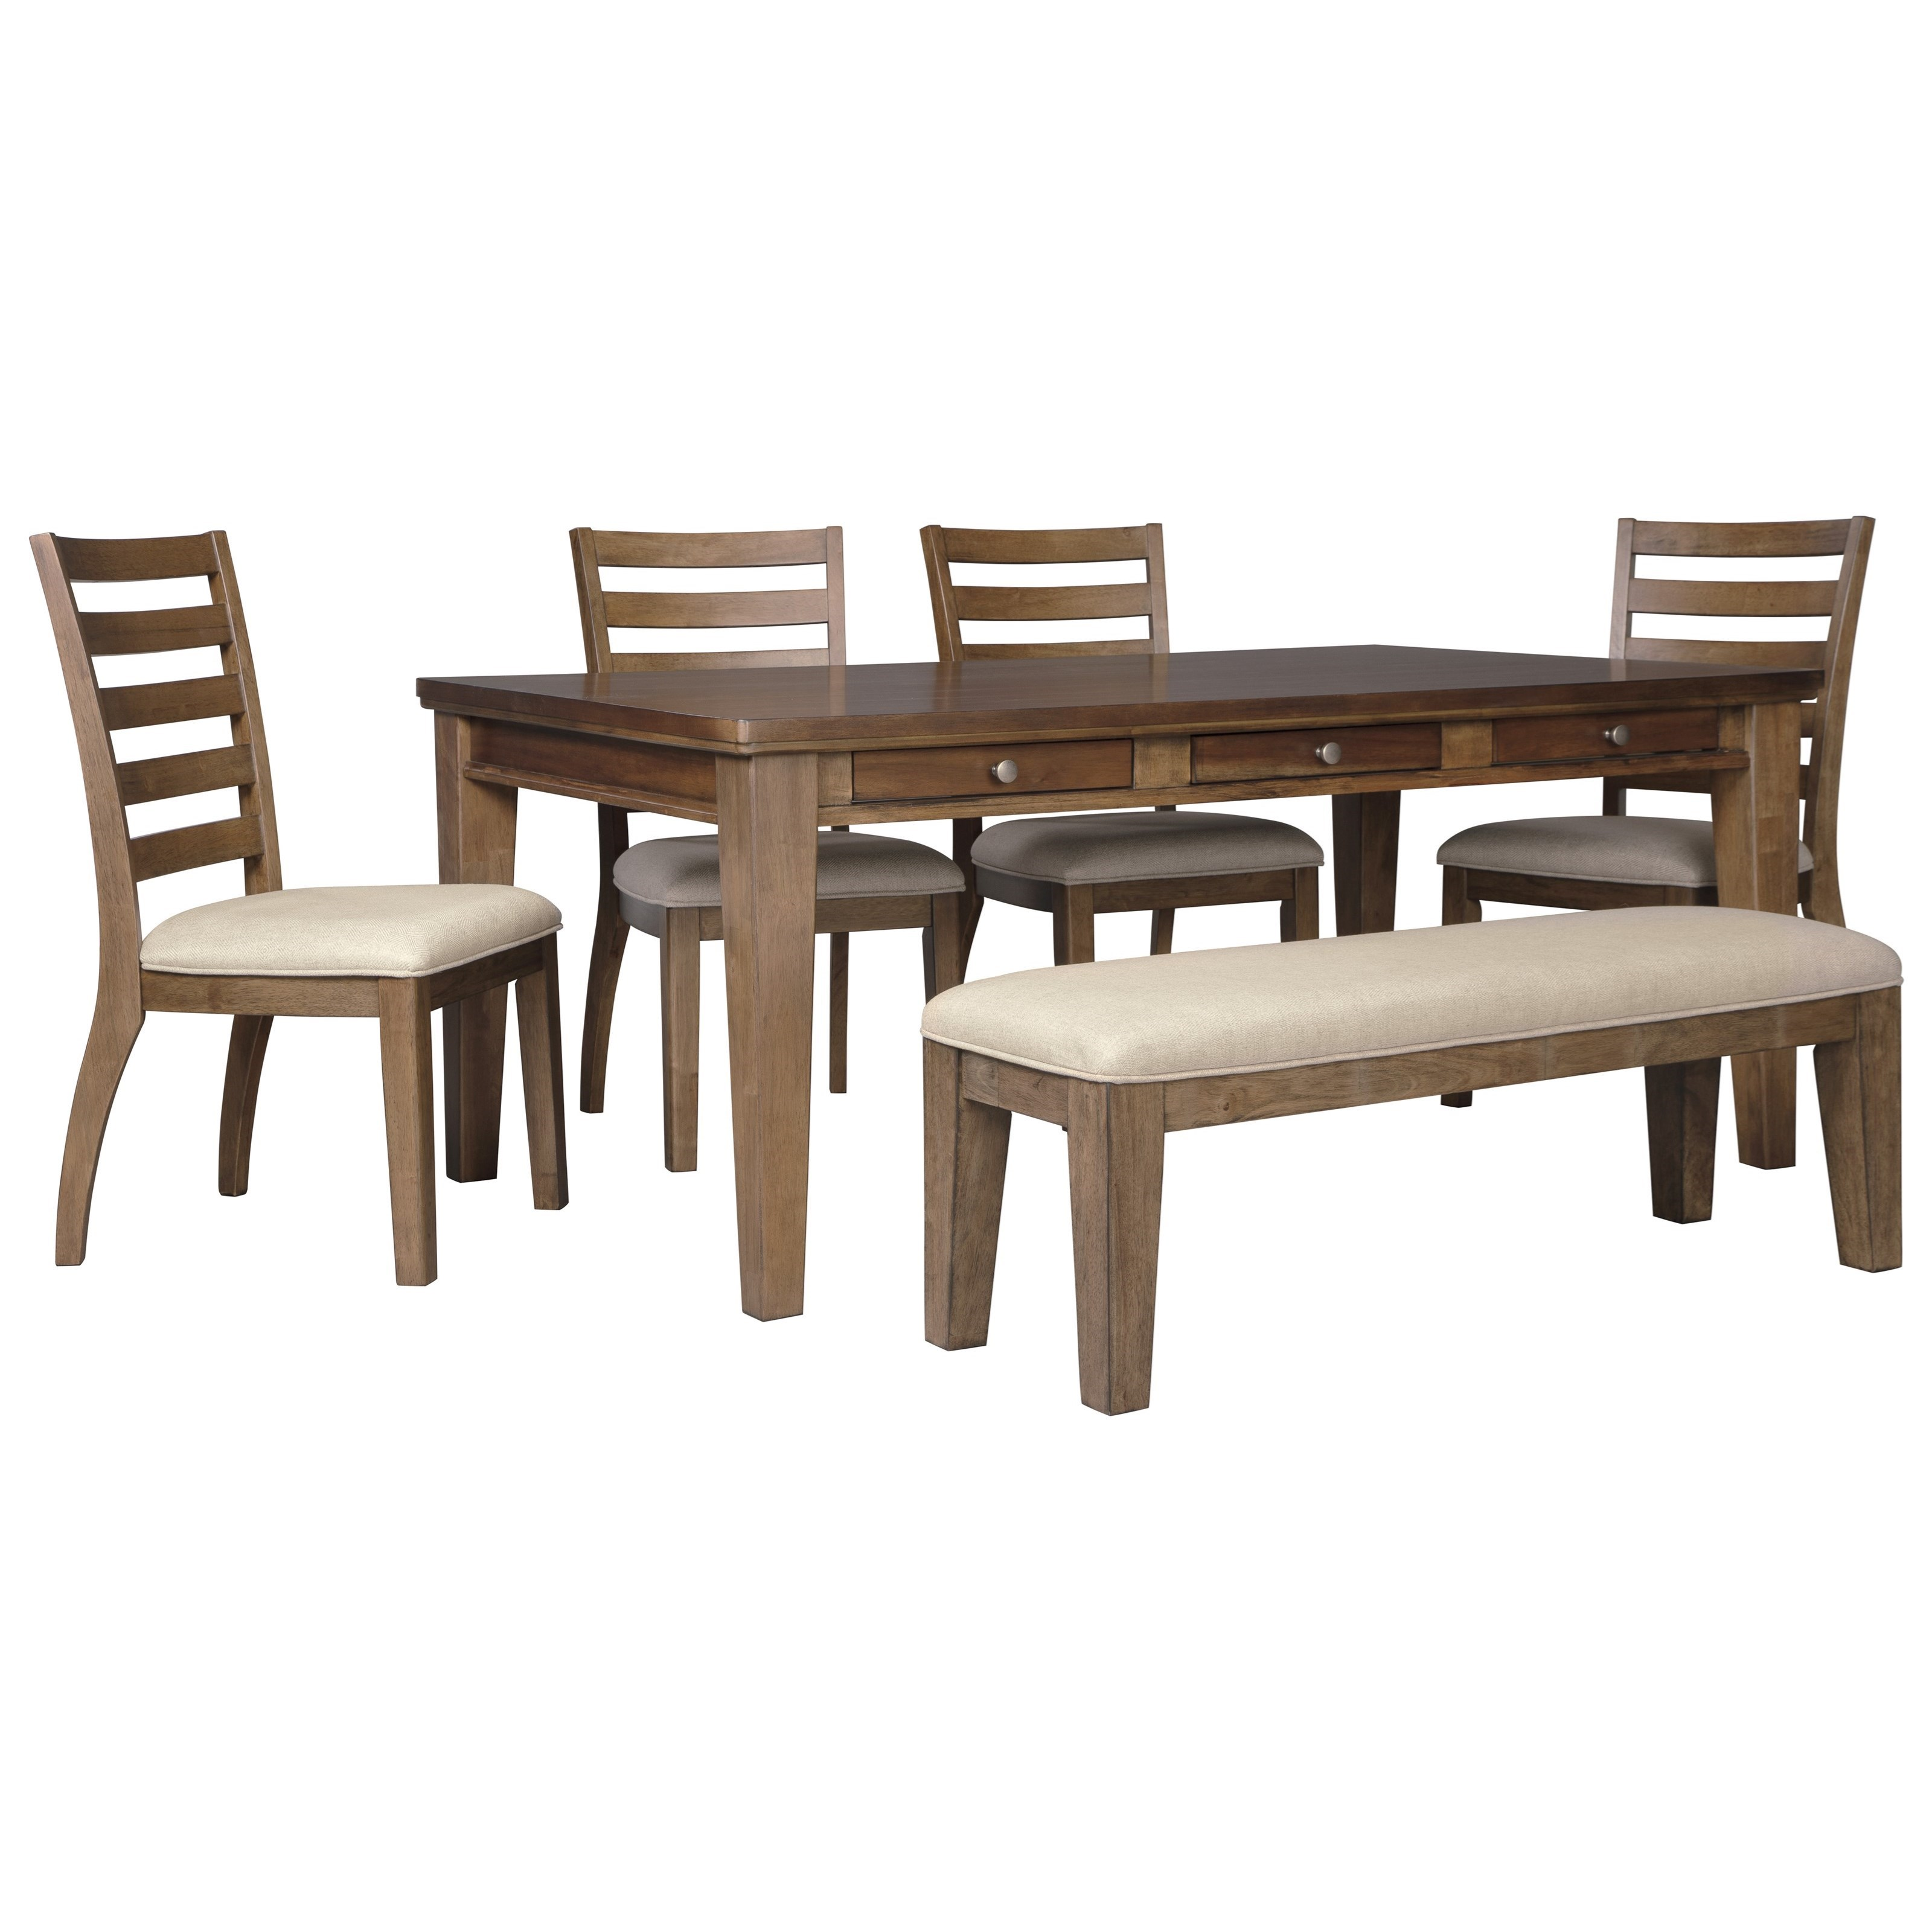 6 Piece Storage Table Set with Bench